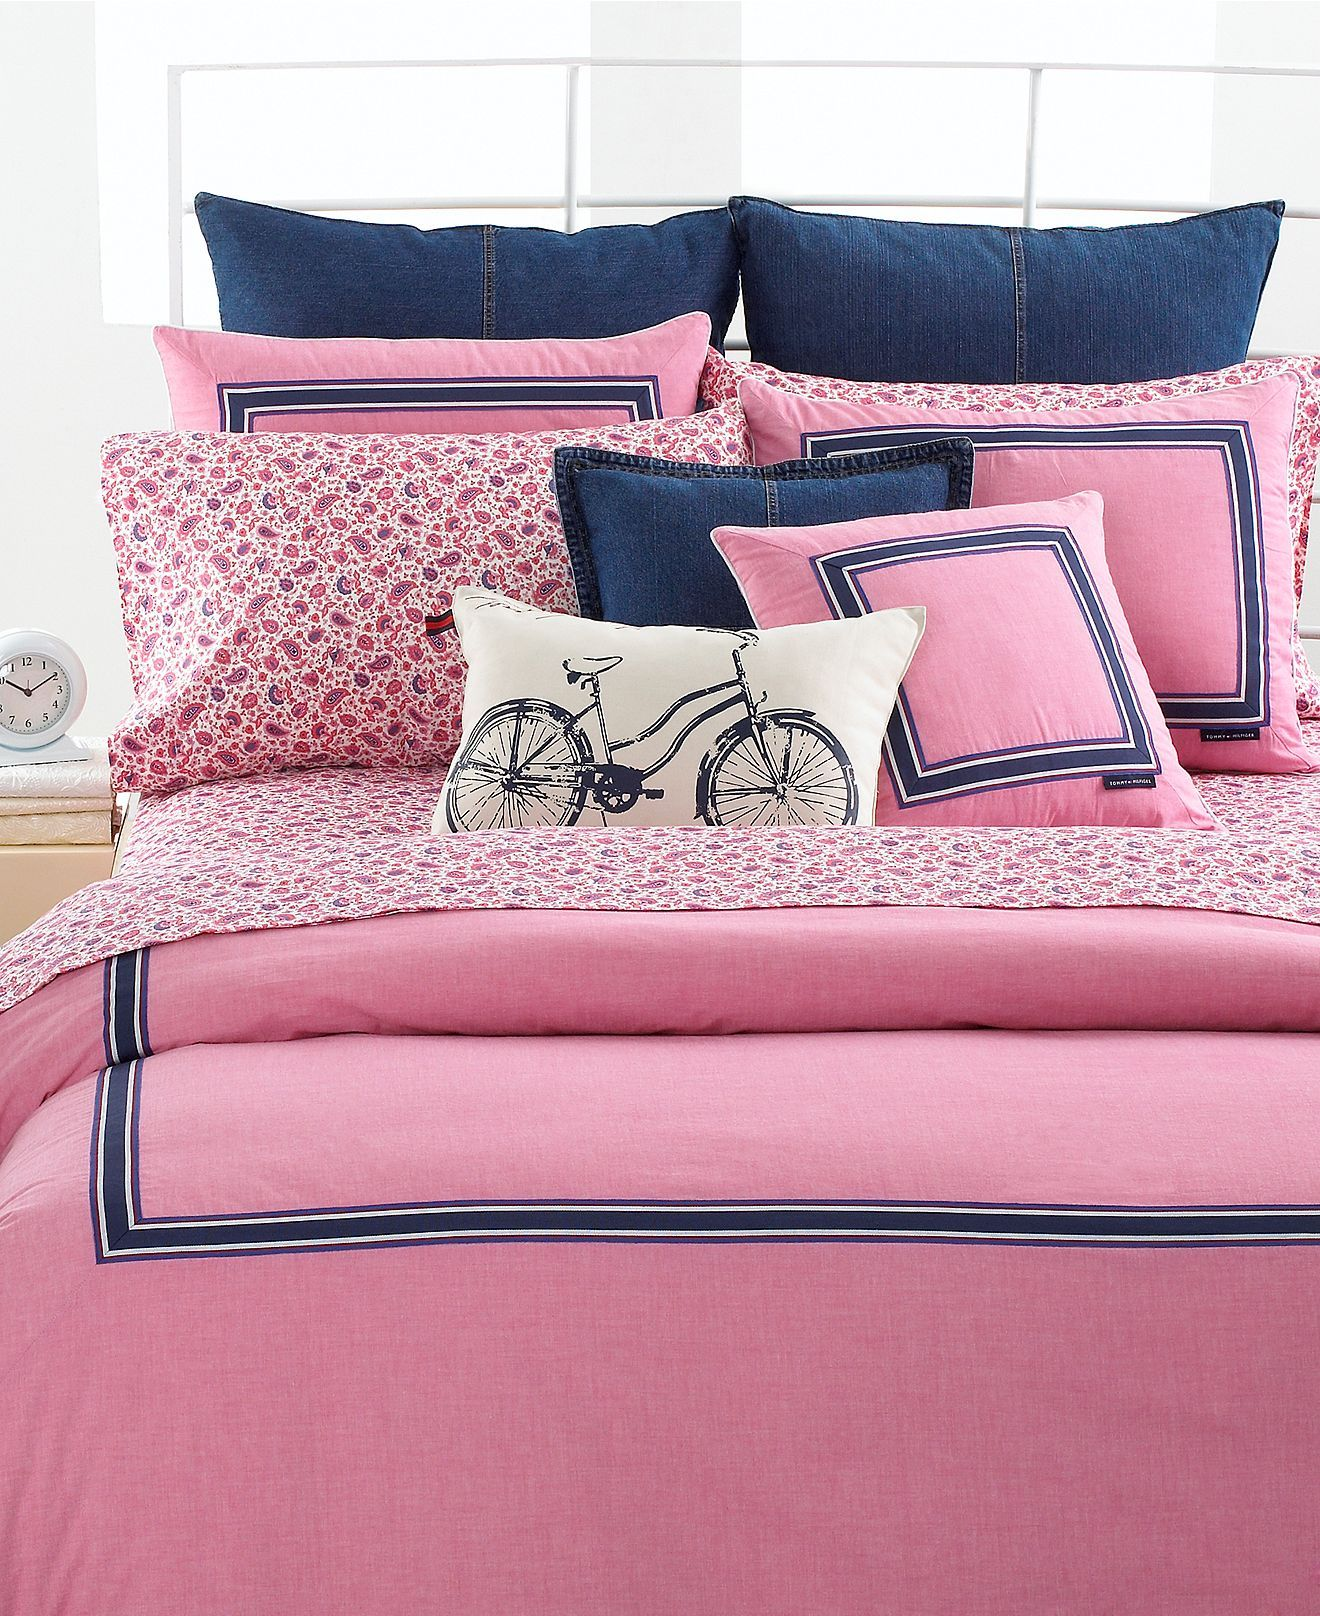 Bed And Bath Bettwäsche Tommy Hilfiger Bedding Pink Oxford King Duvet Cover Tommy